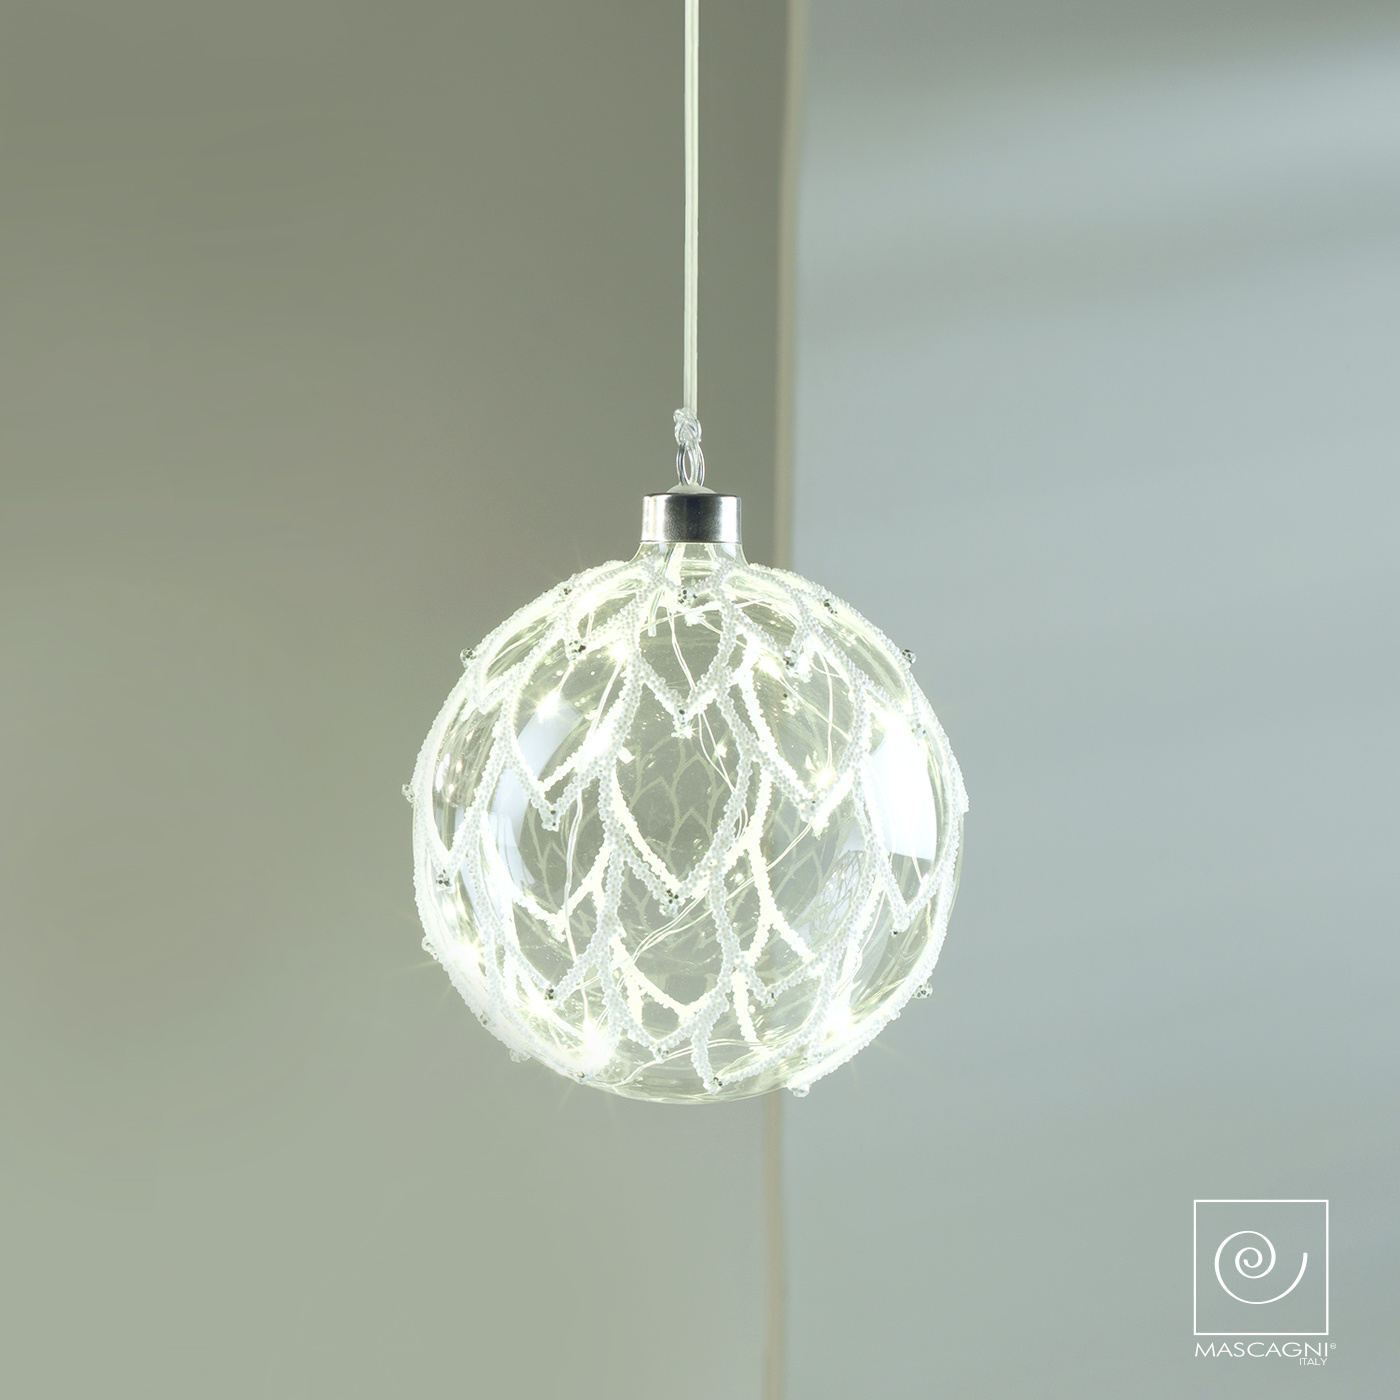 Art Mascagni LED BALL DIAM.12